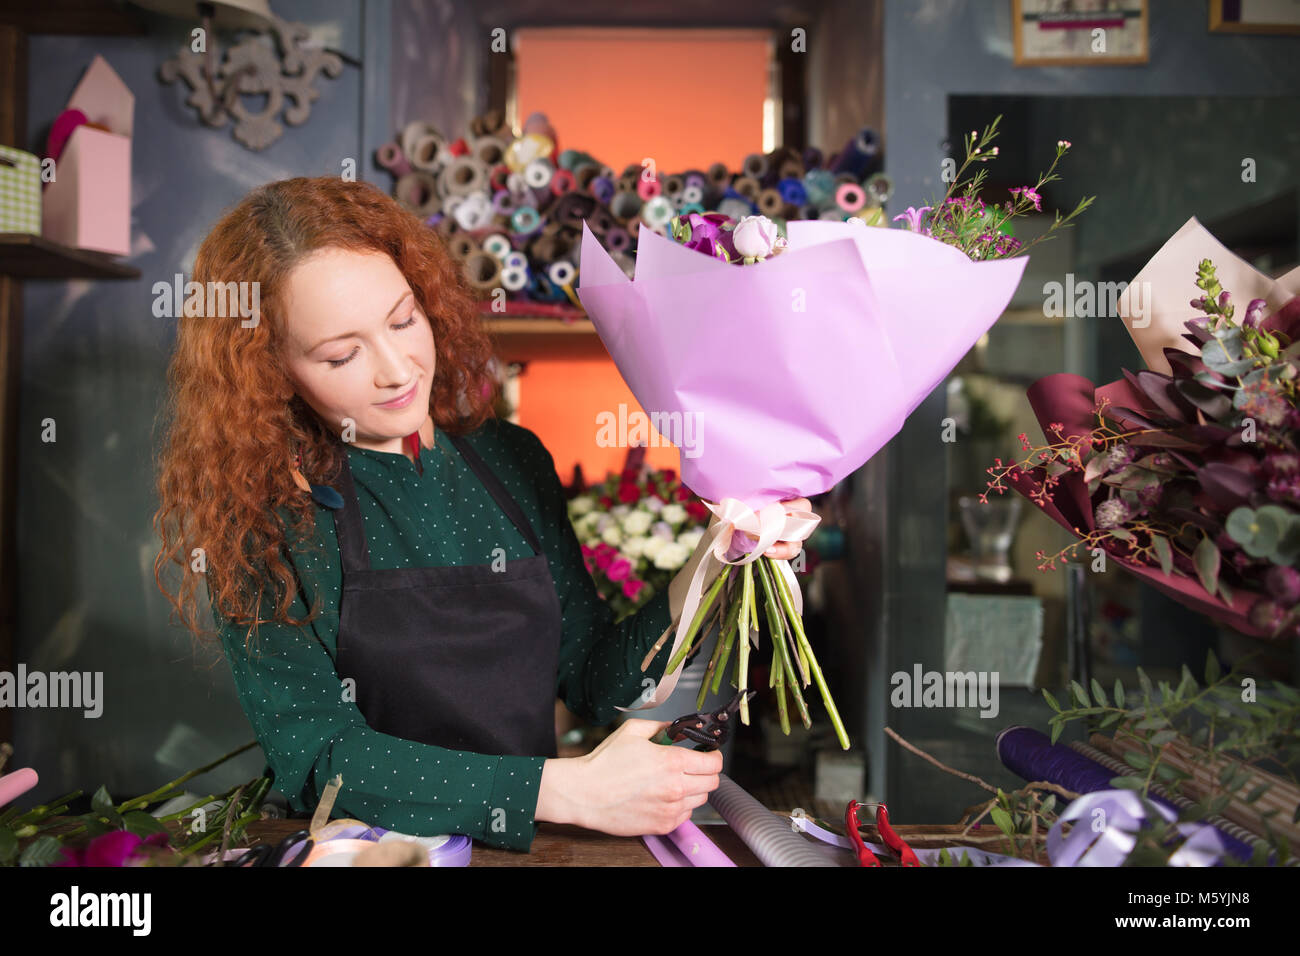 highly skilled florist cutting a flower stalk - Stock Image